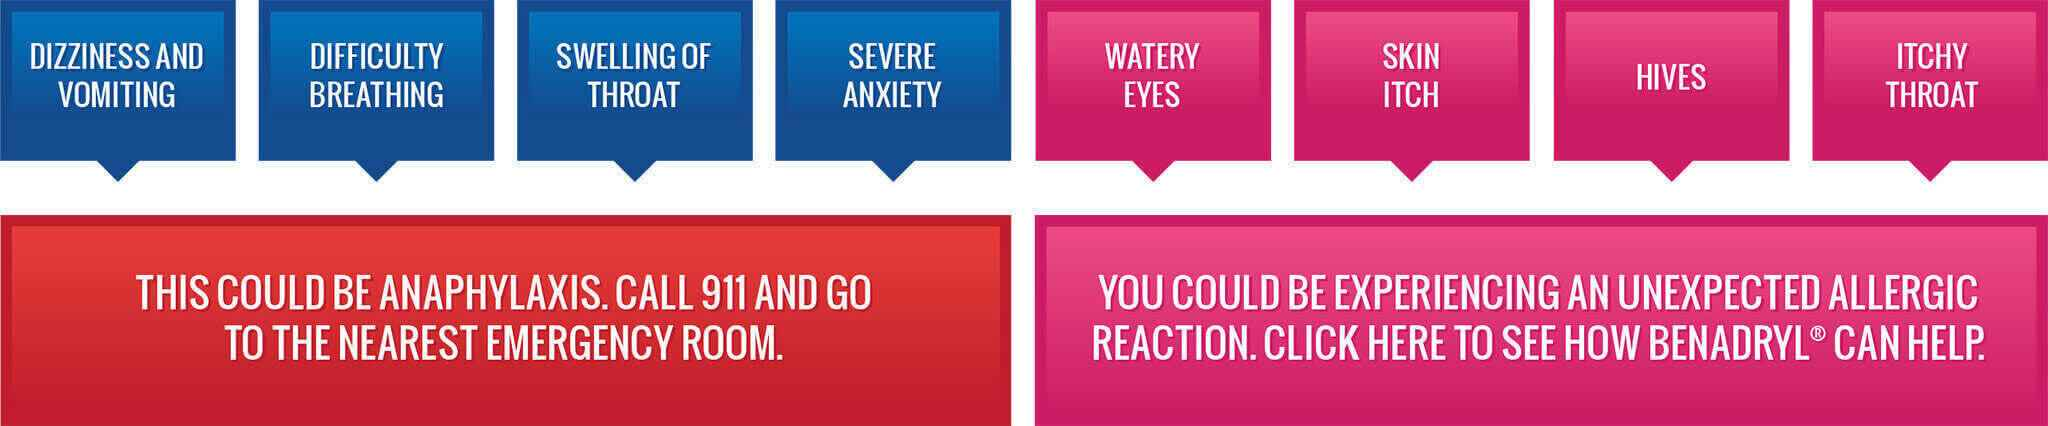 what are allergic reactions? | benadryl® canada